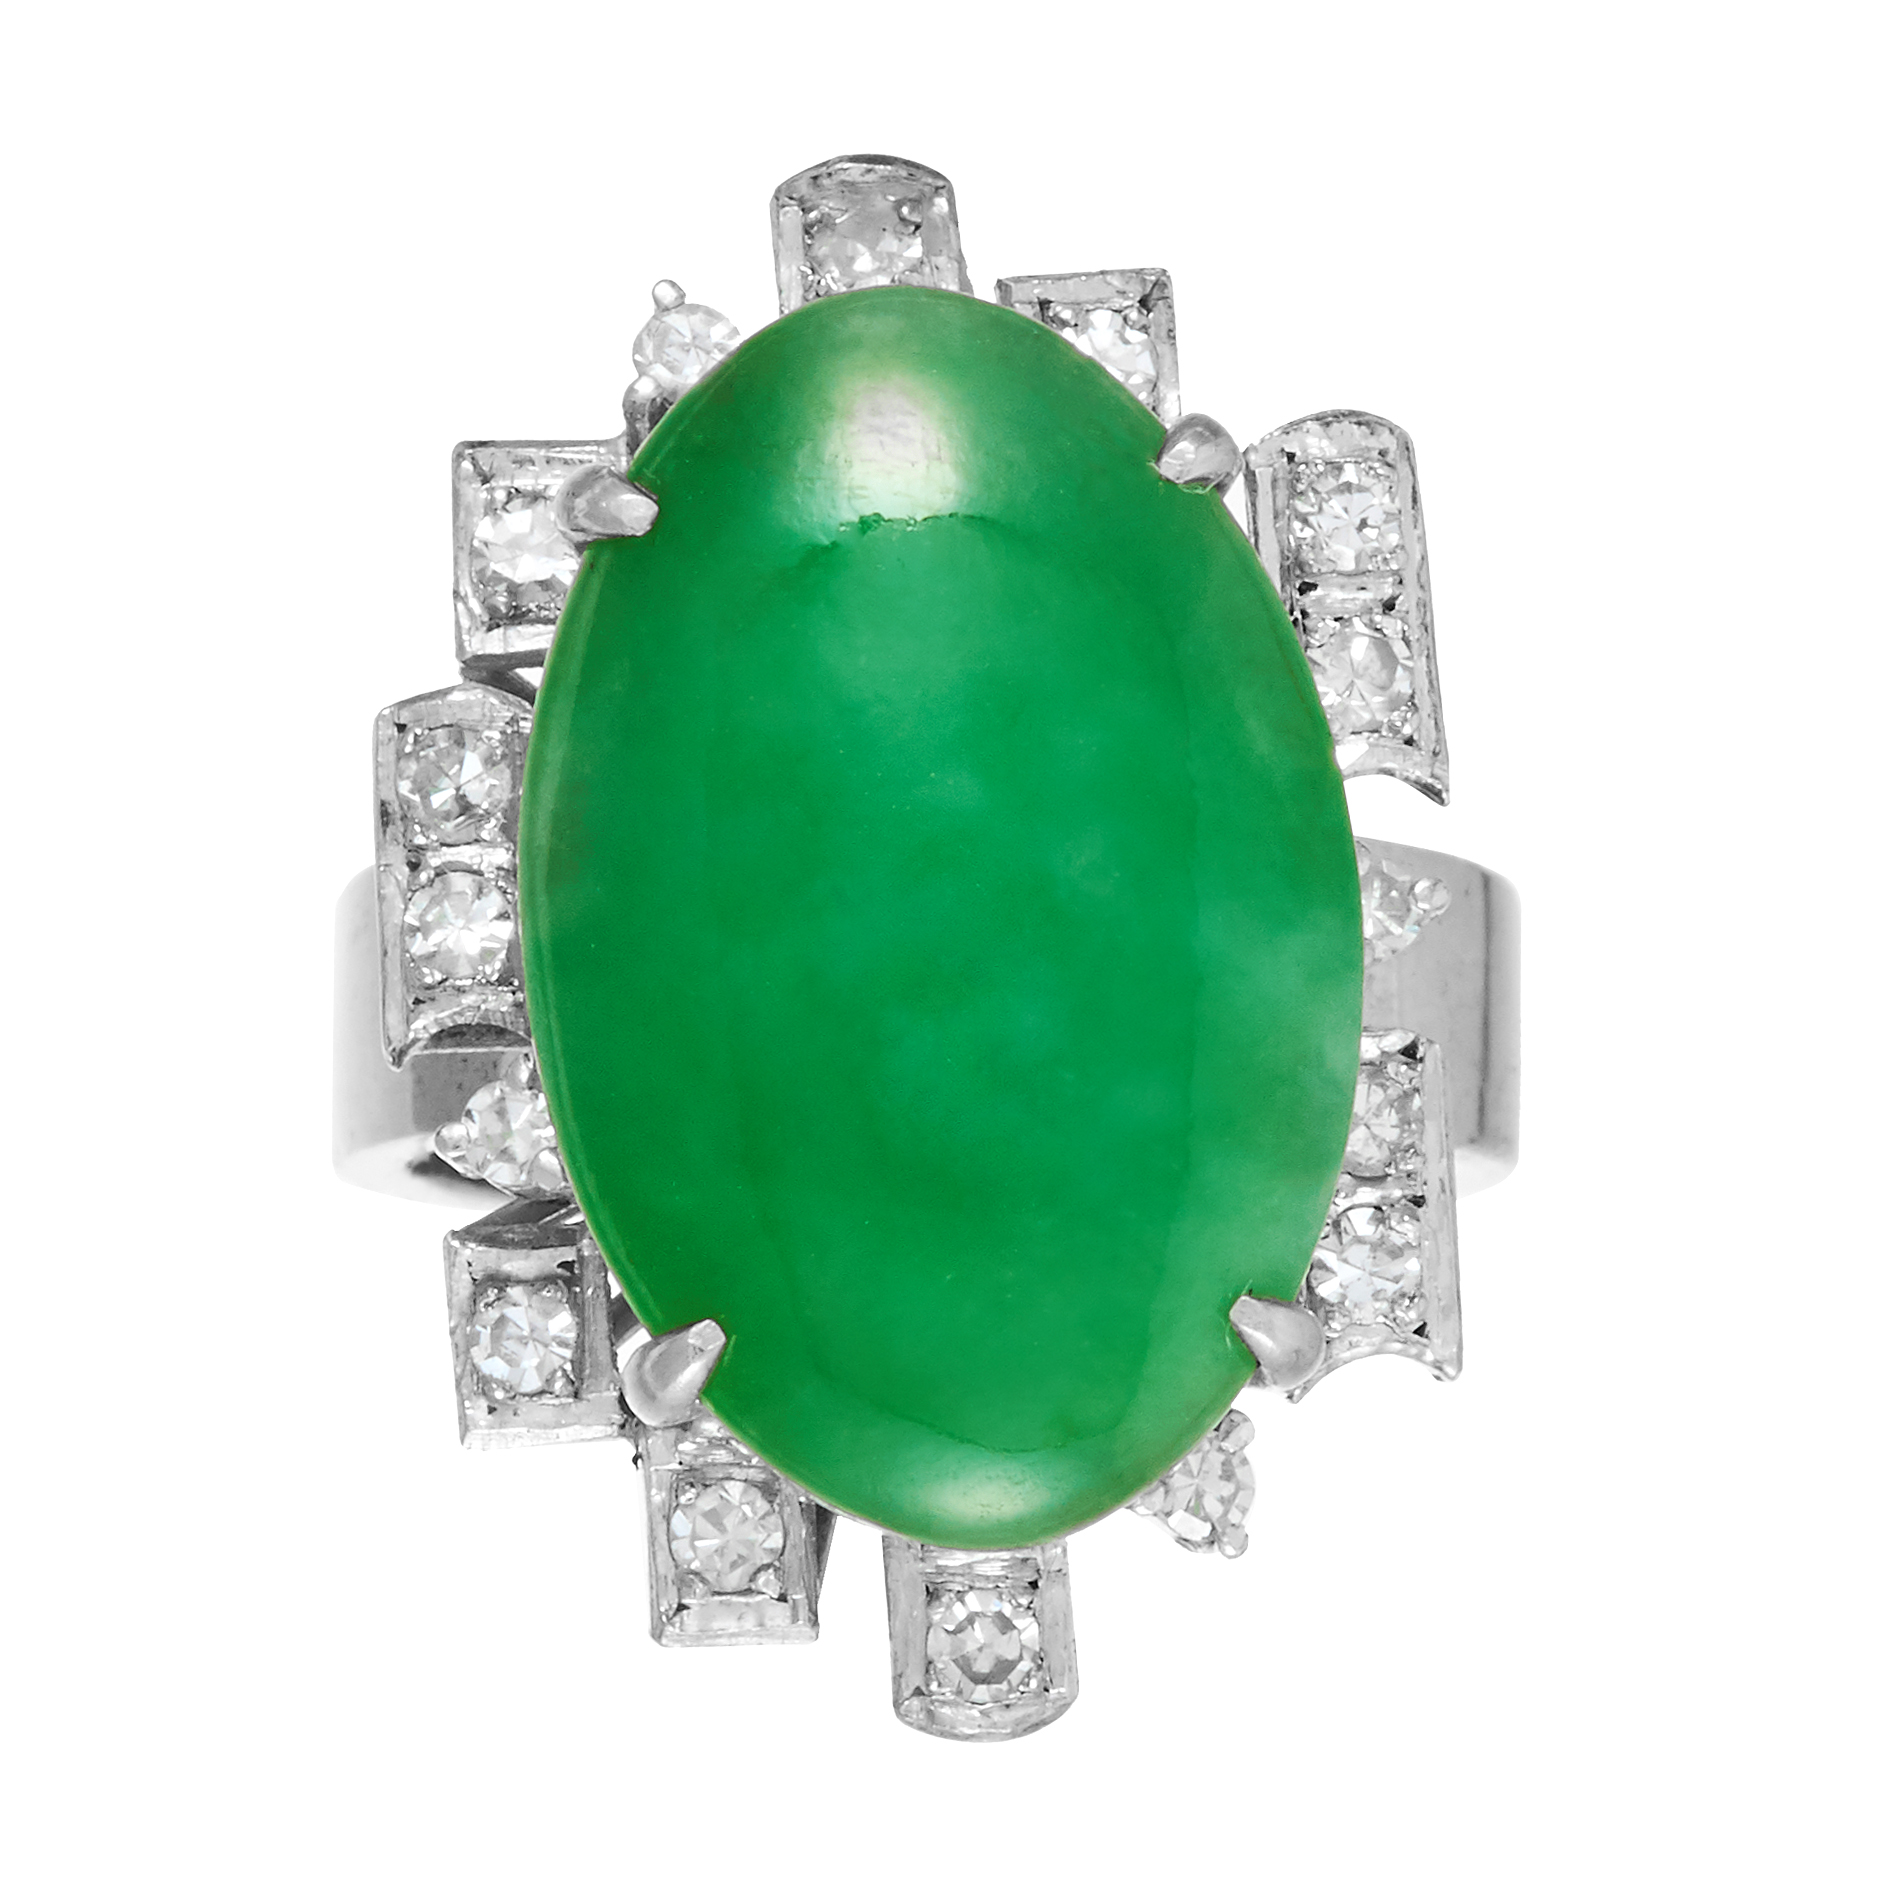 JADEITE JADE AND DIAMOND DRESS RING the oval jade cabochon within a geometric diamond border, size L